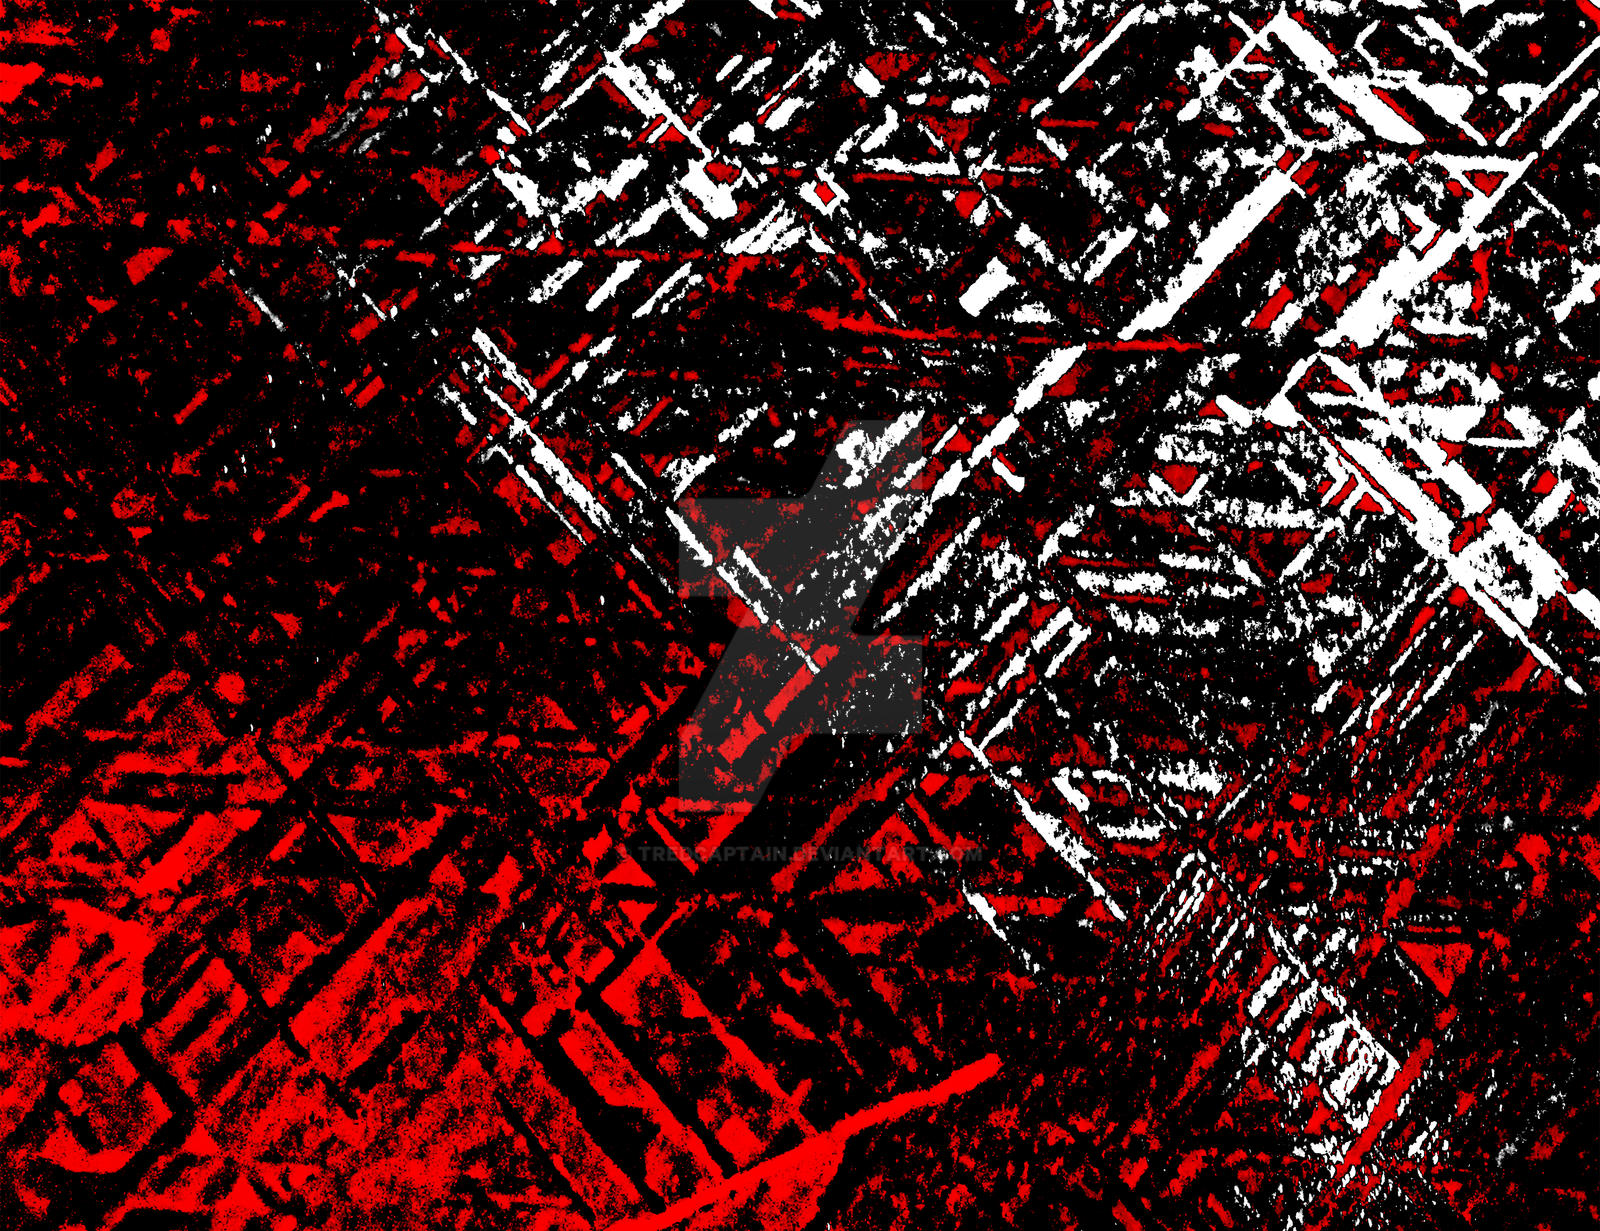 techno stone red n black texture background by